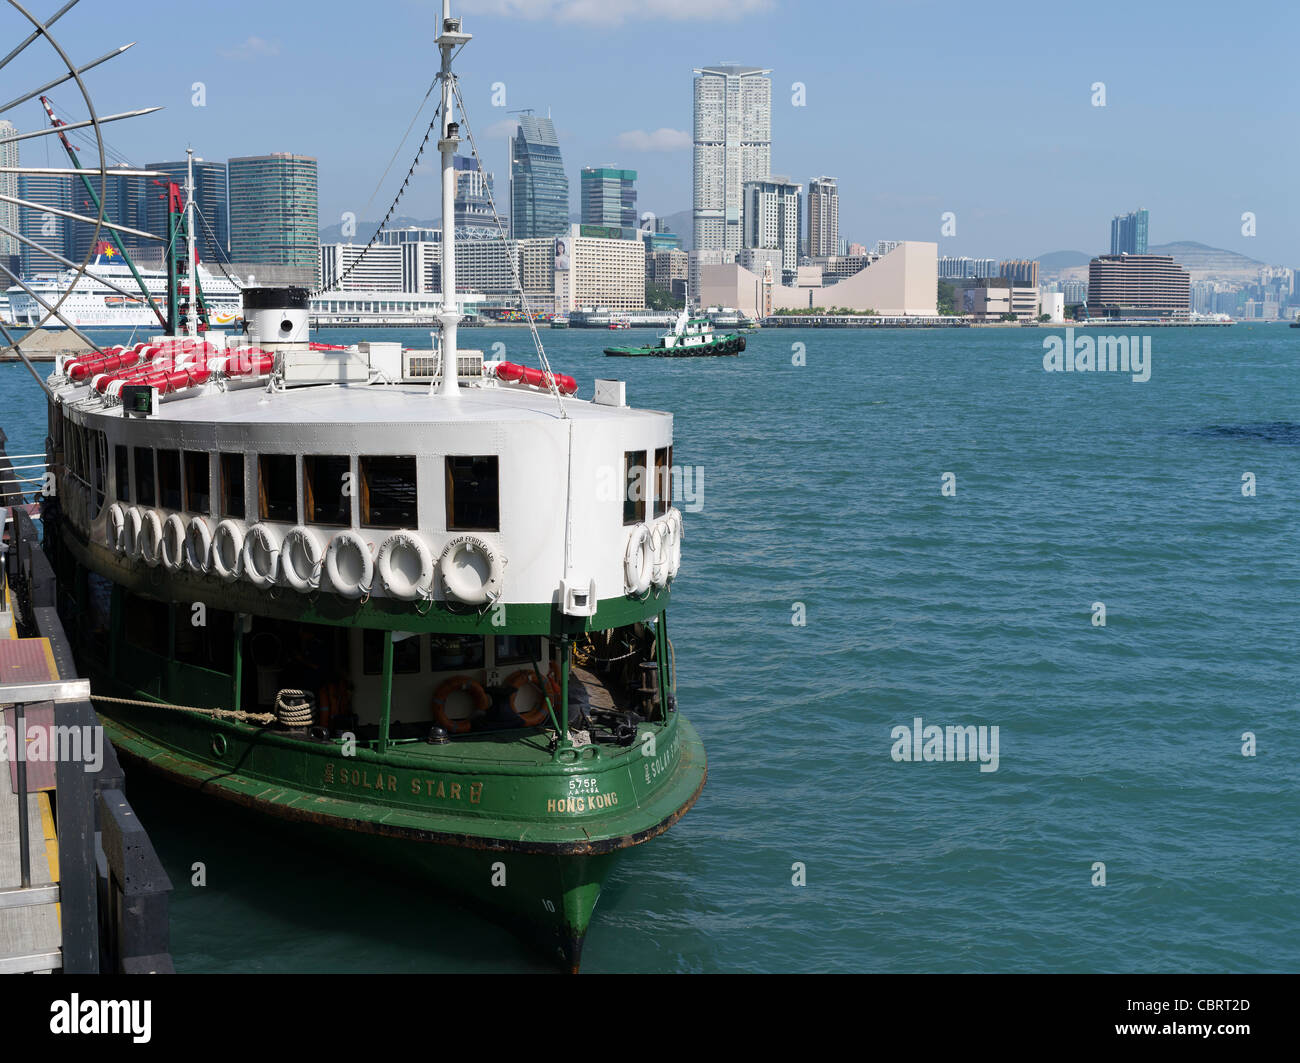 dh  CENTRAL HONG KONG Solar Star ferry at Central Pier 7 habour Tsim sha Tsui harbour ferryboats - Stock Image